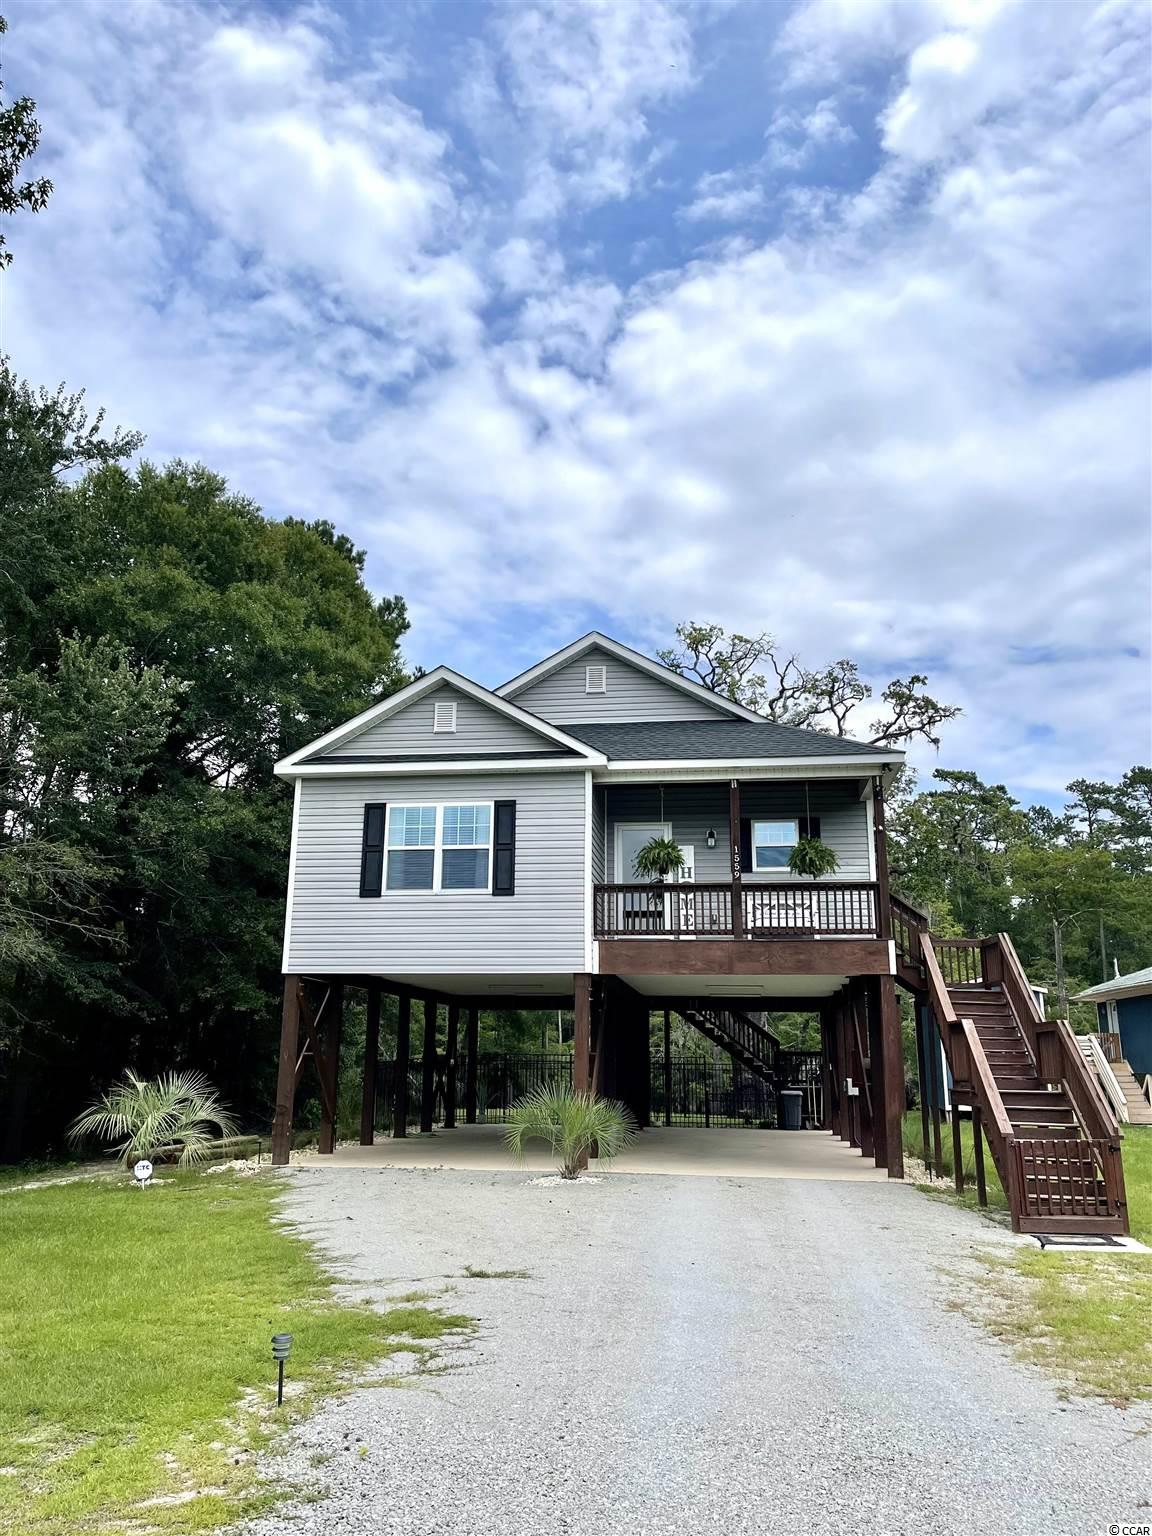 Here is a beautiful 2 BR 2 BA riverfront home minutes away from the beach.  The home was custom built featuring custom cabinets, granite countertops, stainless appliances, and much more for luxury living.  There are porches for sitting, cooking, and enjoying the outdoor area overlooking the river.  There is a fenced backyard for pets.  Perfect for the folks who want to be away from the rules of an HOA, but be close enough to town and activities.  This home would also make a great second home to enjoy both the river and the beach.